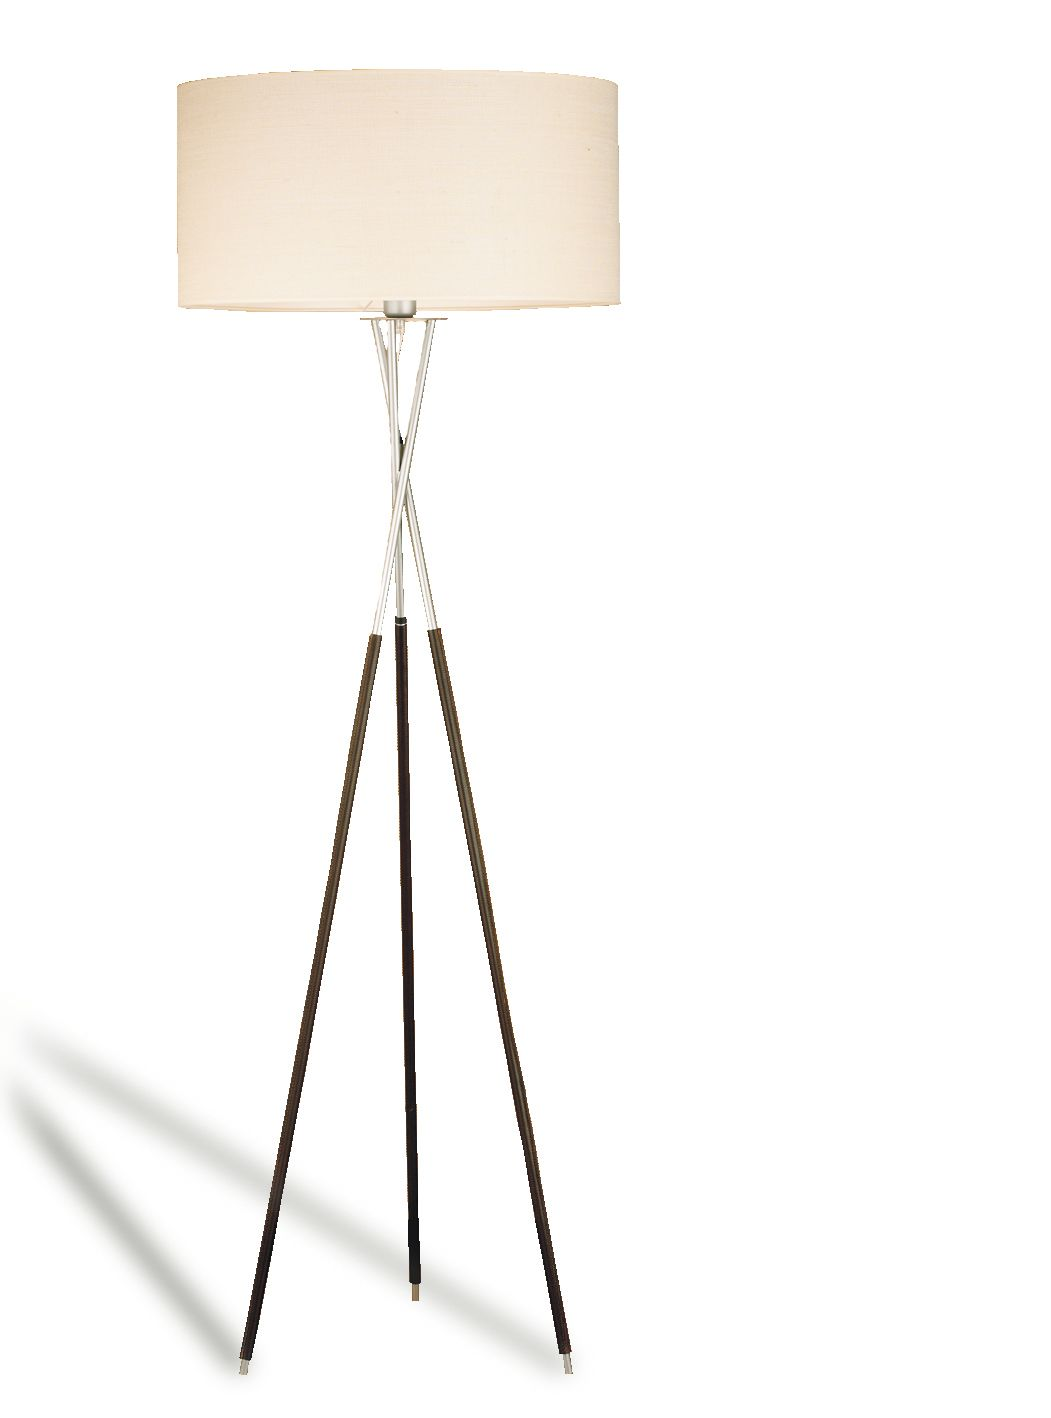 TRIPODE LAMP 42W E27.n Cotton. Height 160 cm. Diameter lampshade 45 cm  #tripode #floor #lamp #cotton #luxcambra #lampada #lampe #floorlamp #floor #lampadaire #lampadaastelo #stelo #Lamparadepie #pie #decoracion #decoration #decorazione #disegno #design #diseño #interior #interieur #cotone